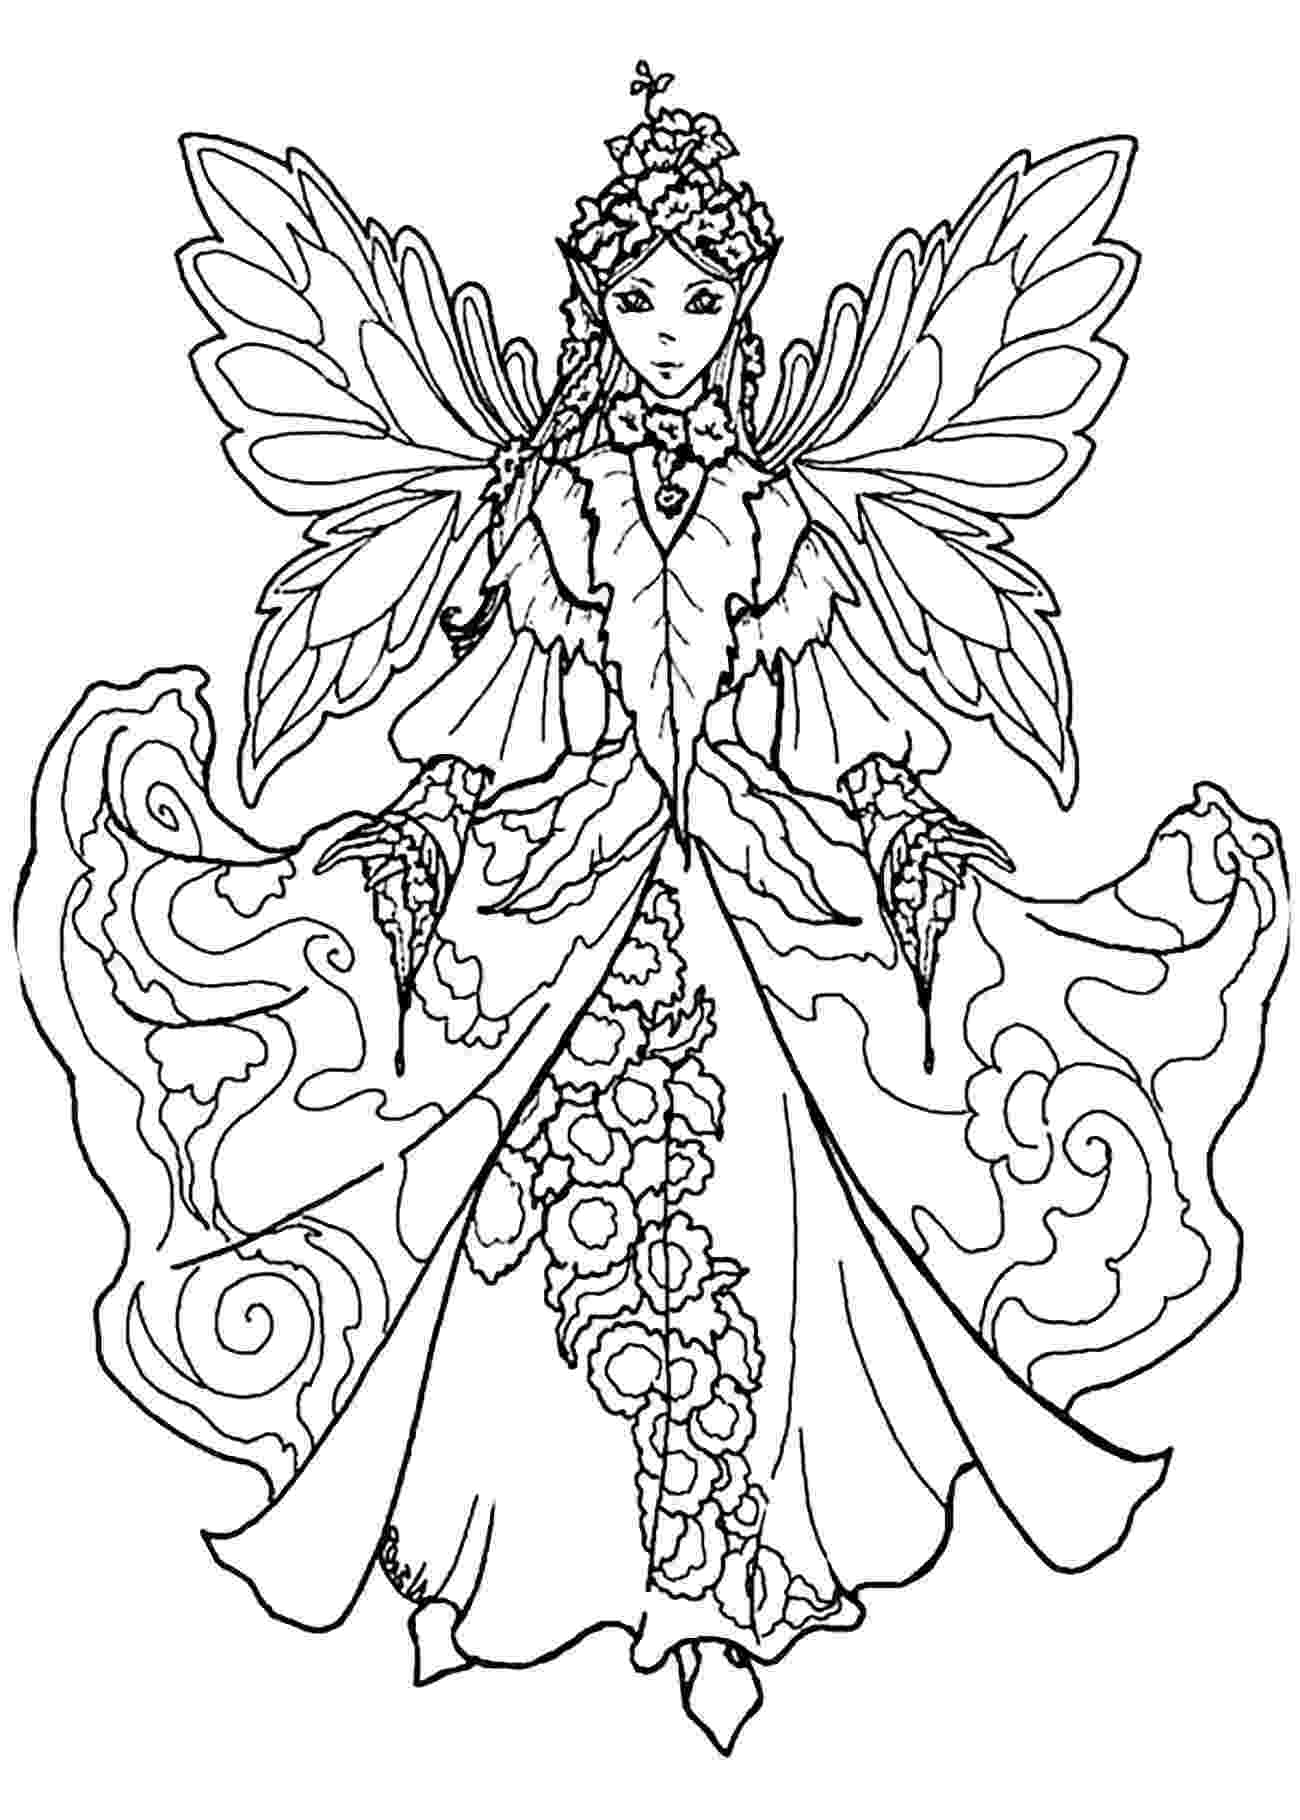 fairy color pages fairy coloring pages for adults best coloring pages for kids pages color fairy